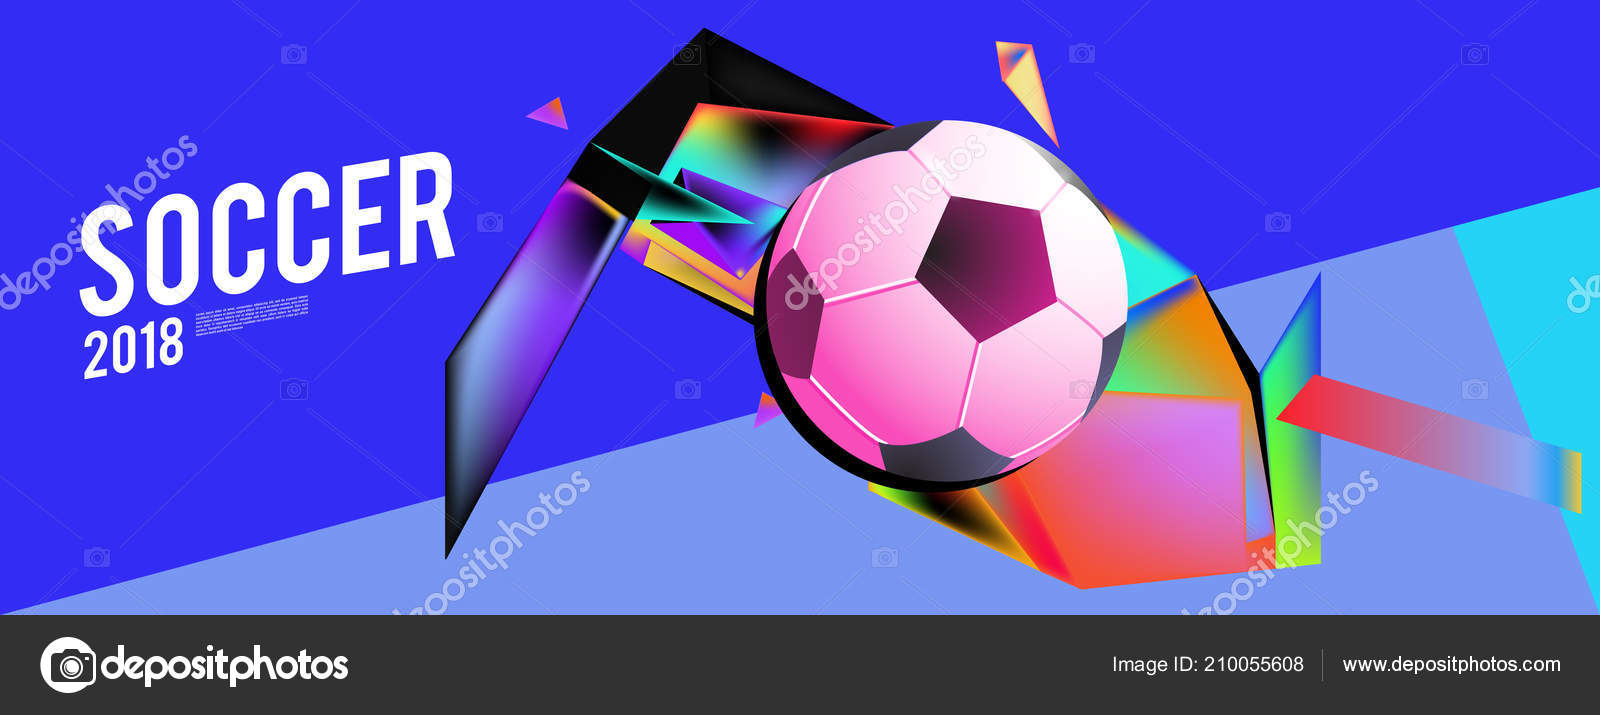 Layout Template Design Poster Soccer Event 2018 Trend Stock Vector